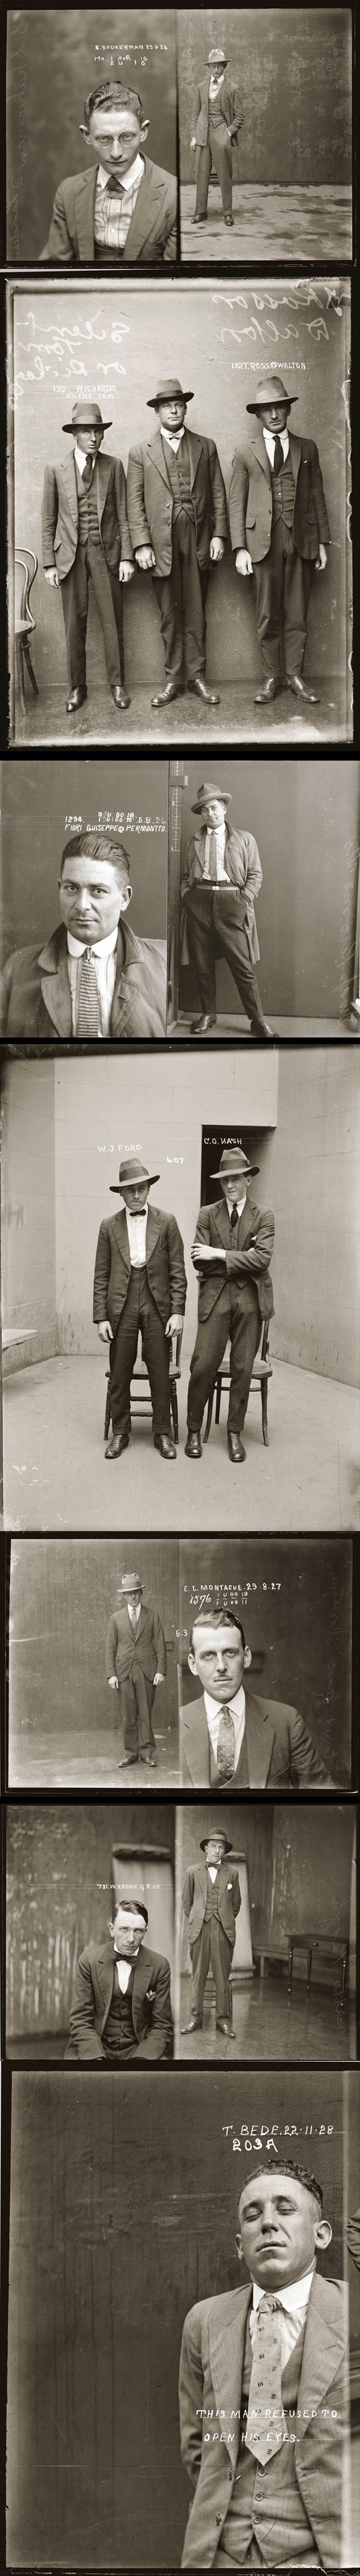 Police mugshots in the 1920s (3)